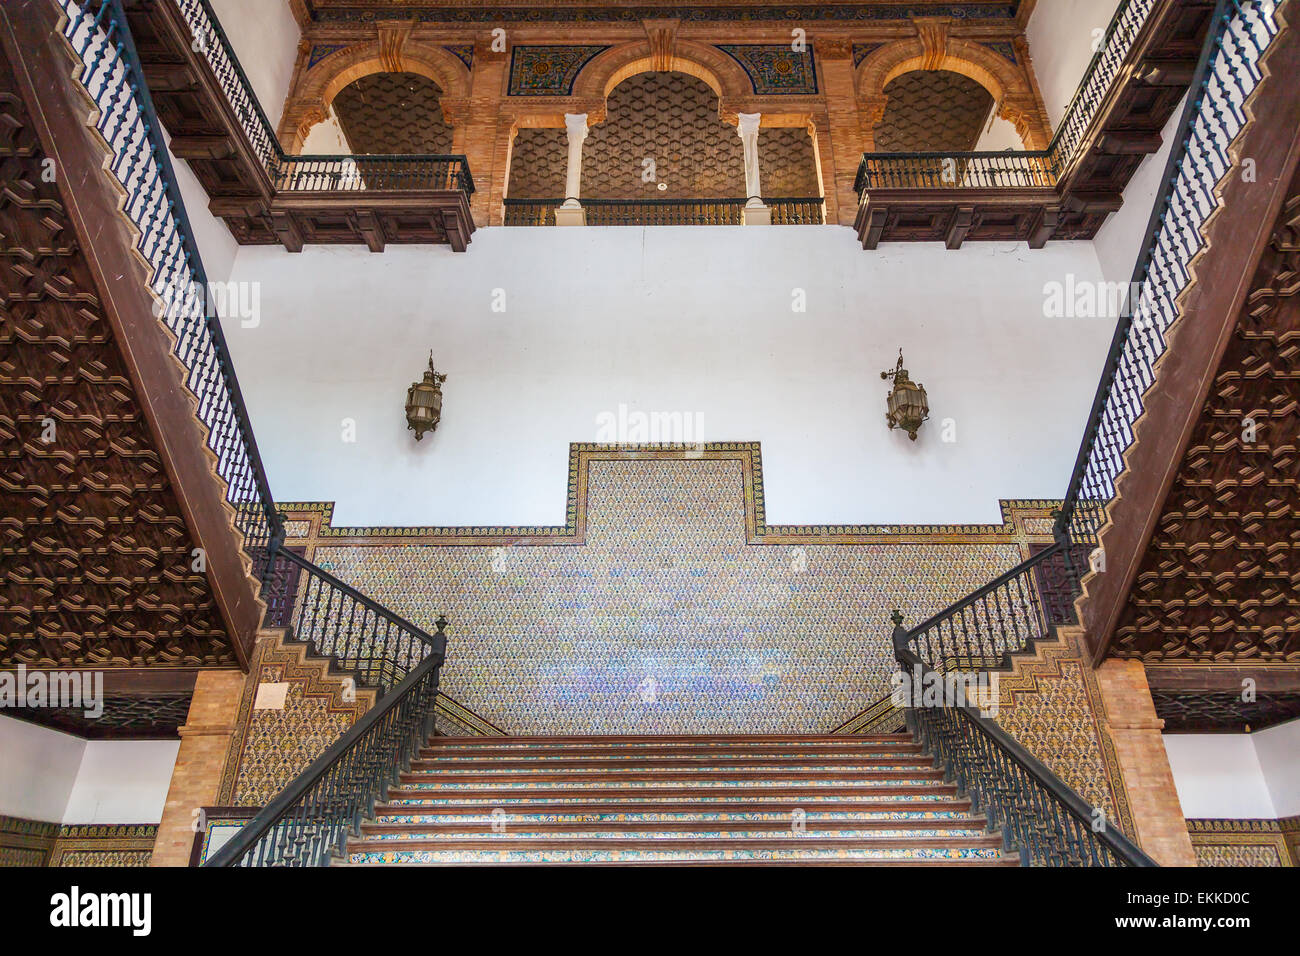 Saville, Spain. Old Spanish Renaissance Revival staircase made of marble and wood. - Stock Image